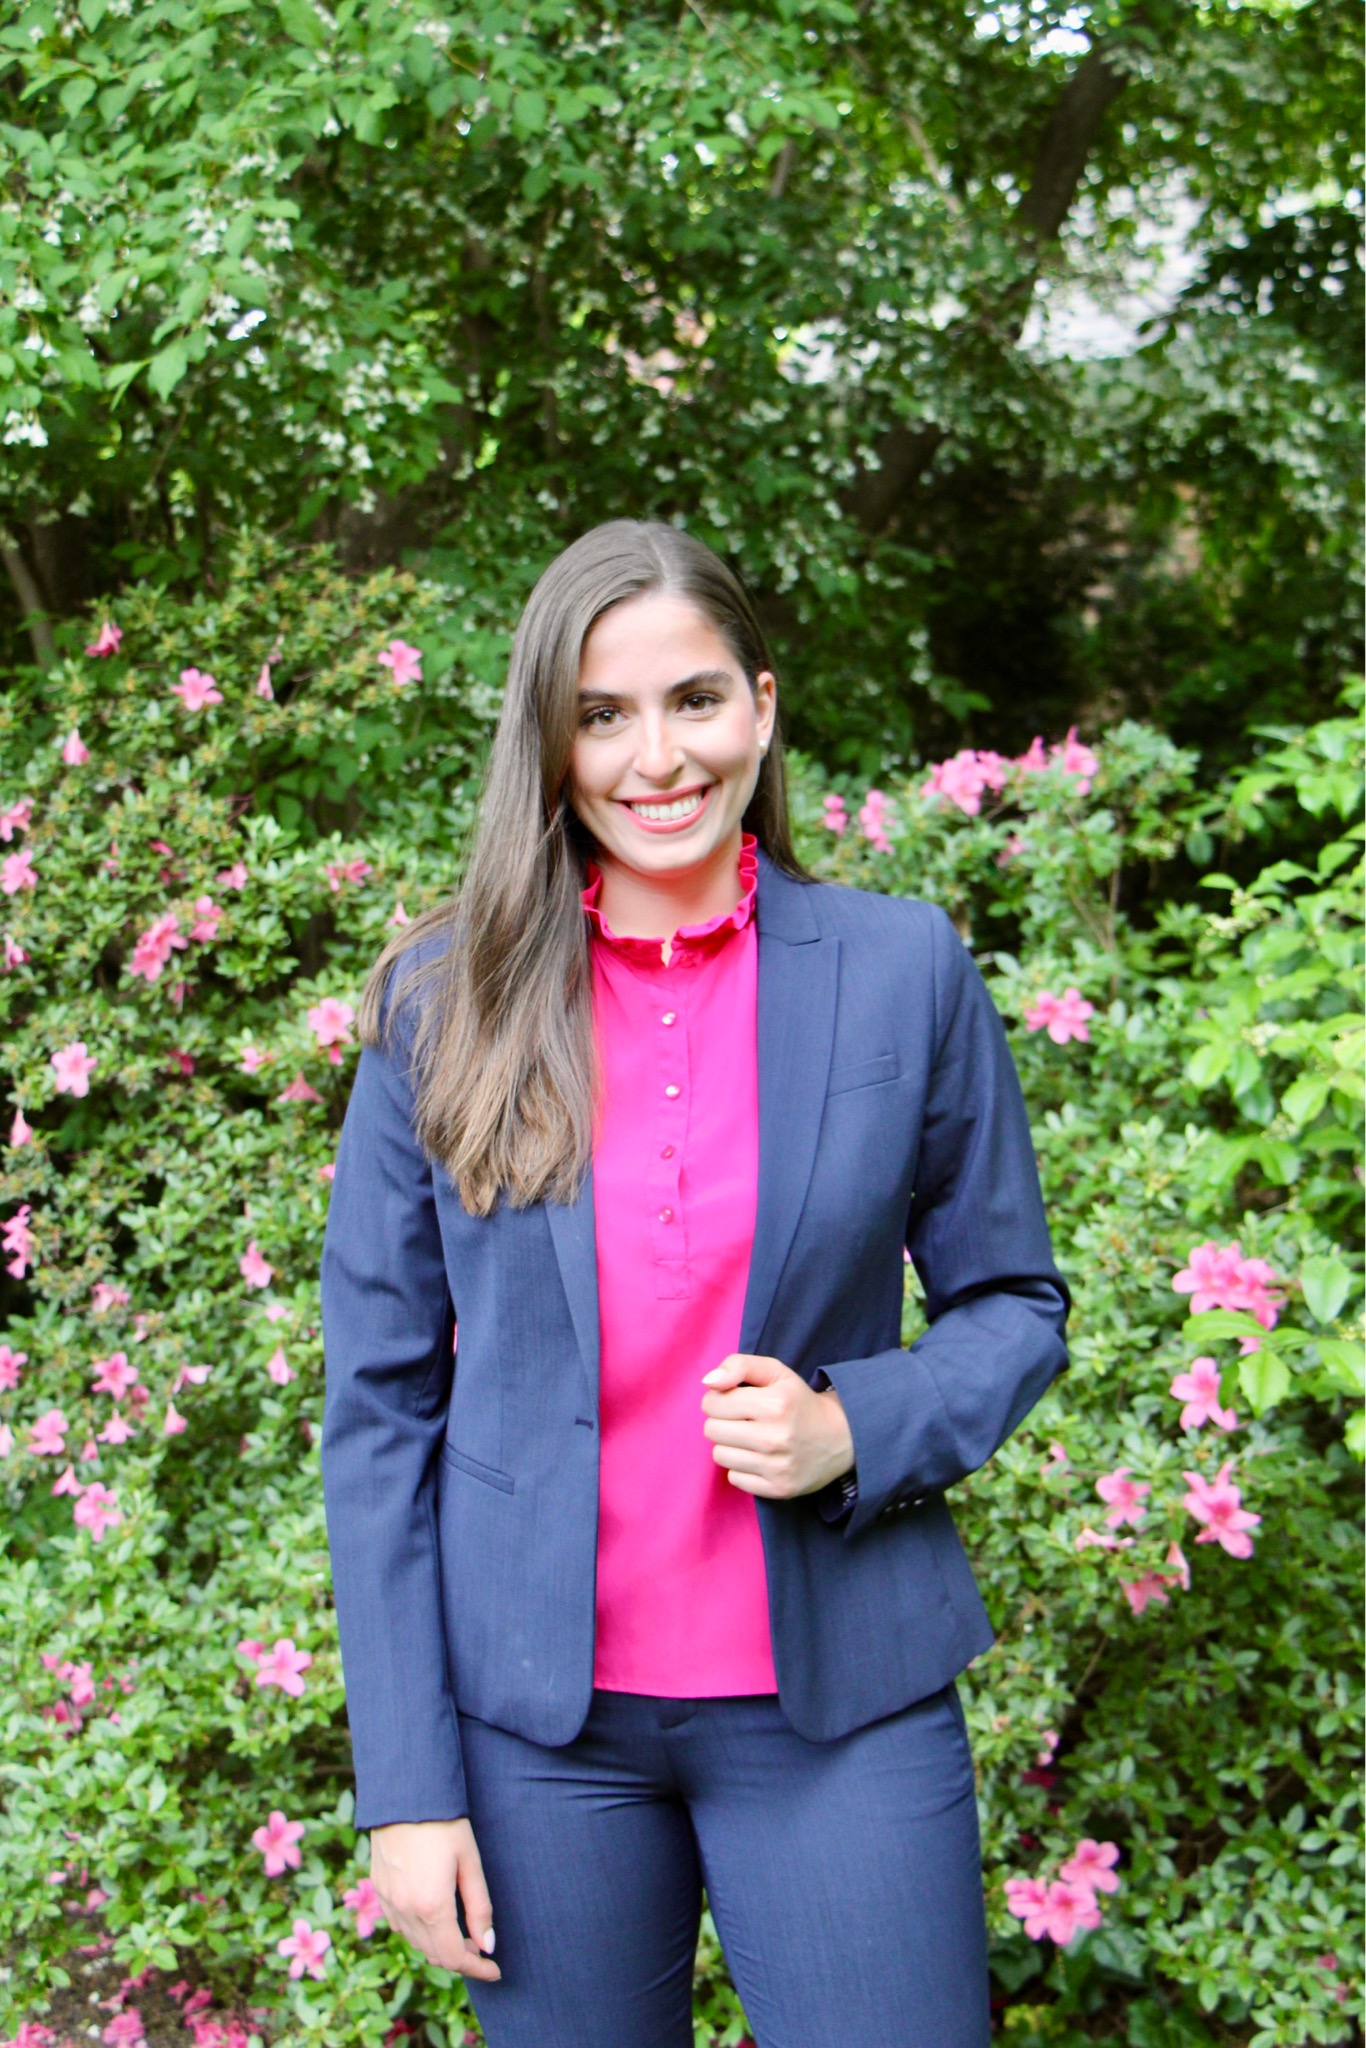 attorney, lawyer, office outfit, workwear, suit, suit jacket, blazer, navy suit, pink top, business professional, business casual